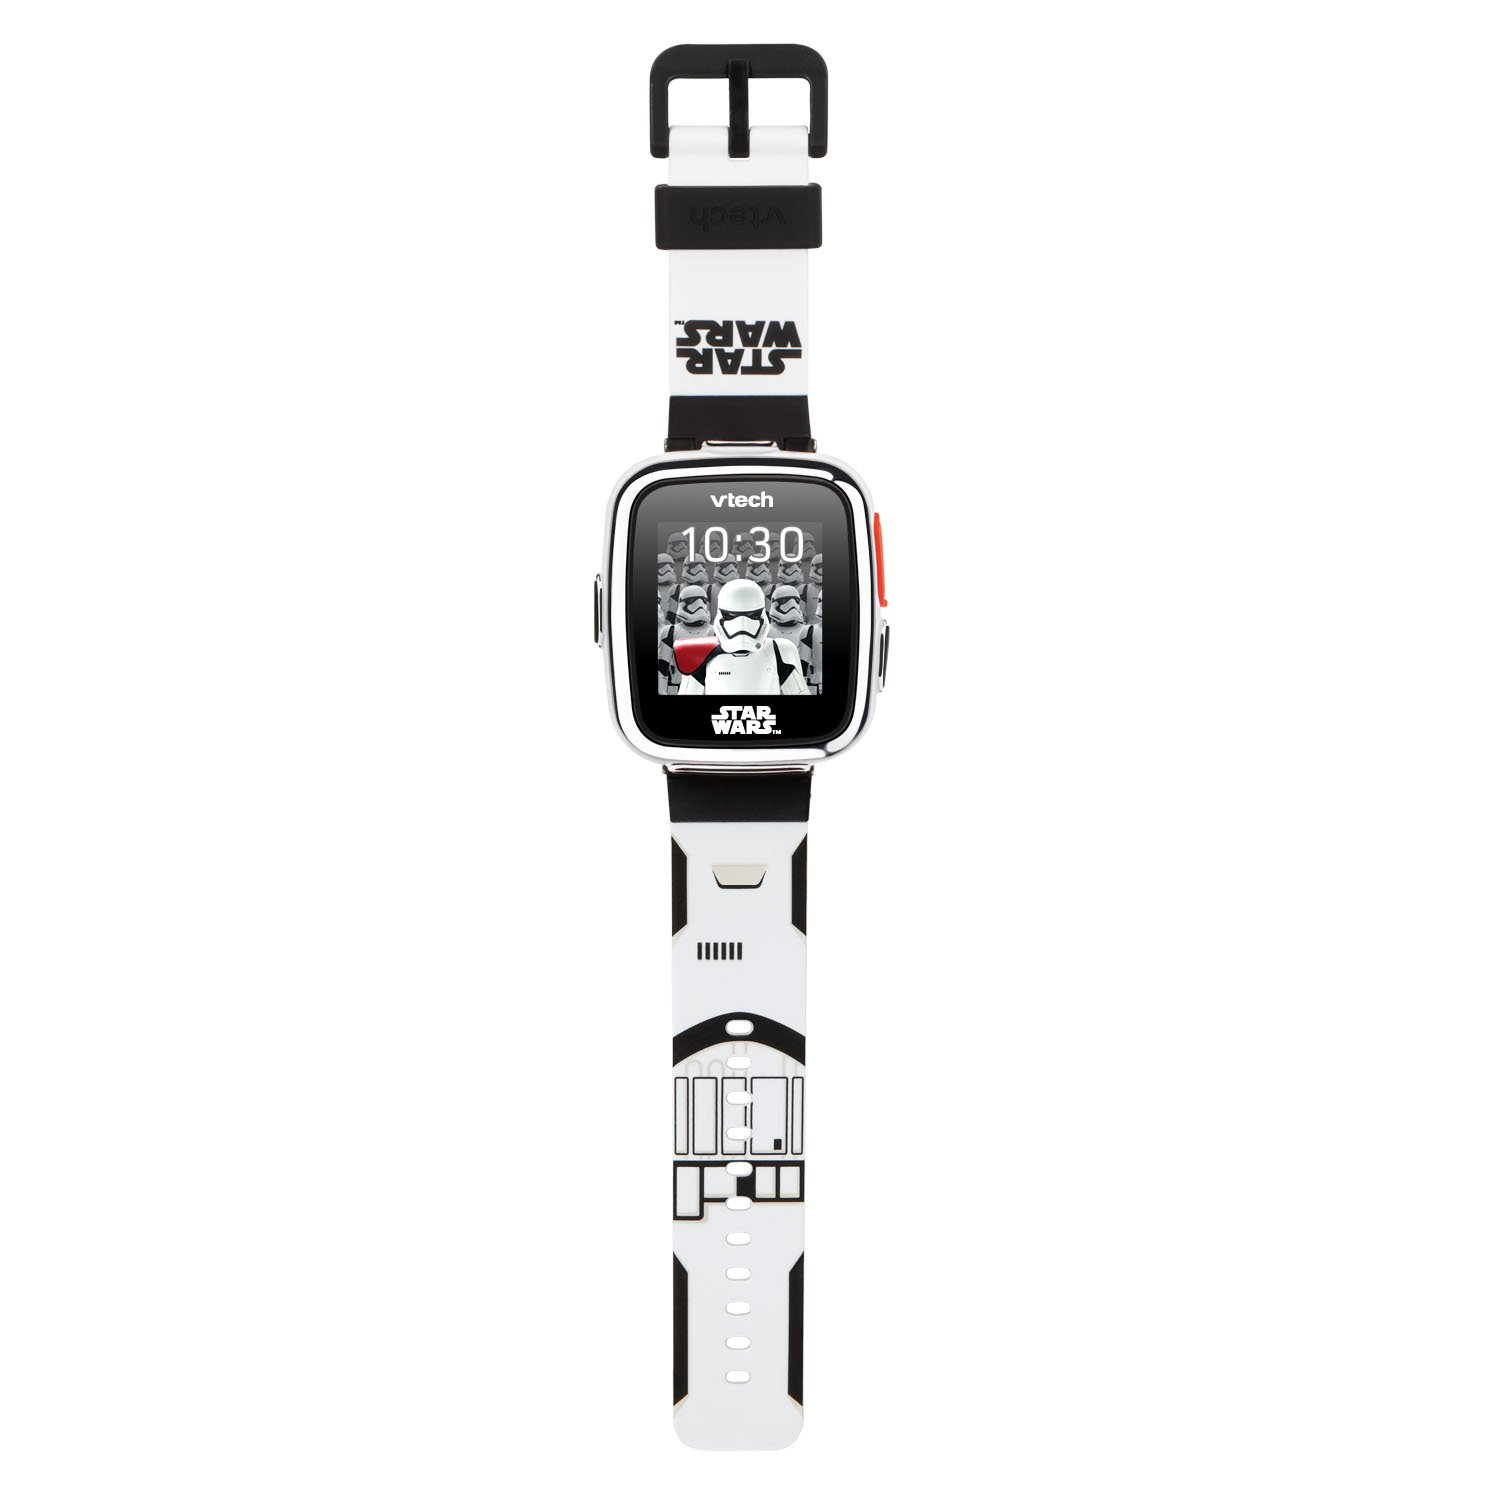 VTech Star Wars First Order Stormtrooper Smartwatch with Camera Amazon Exclusive, White by VTech (Image #2)